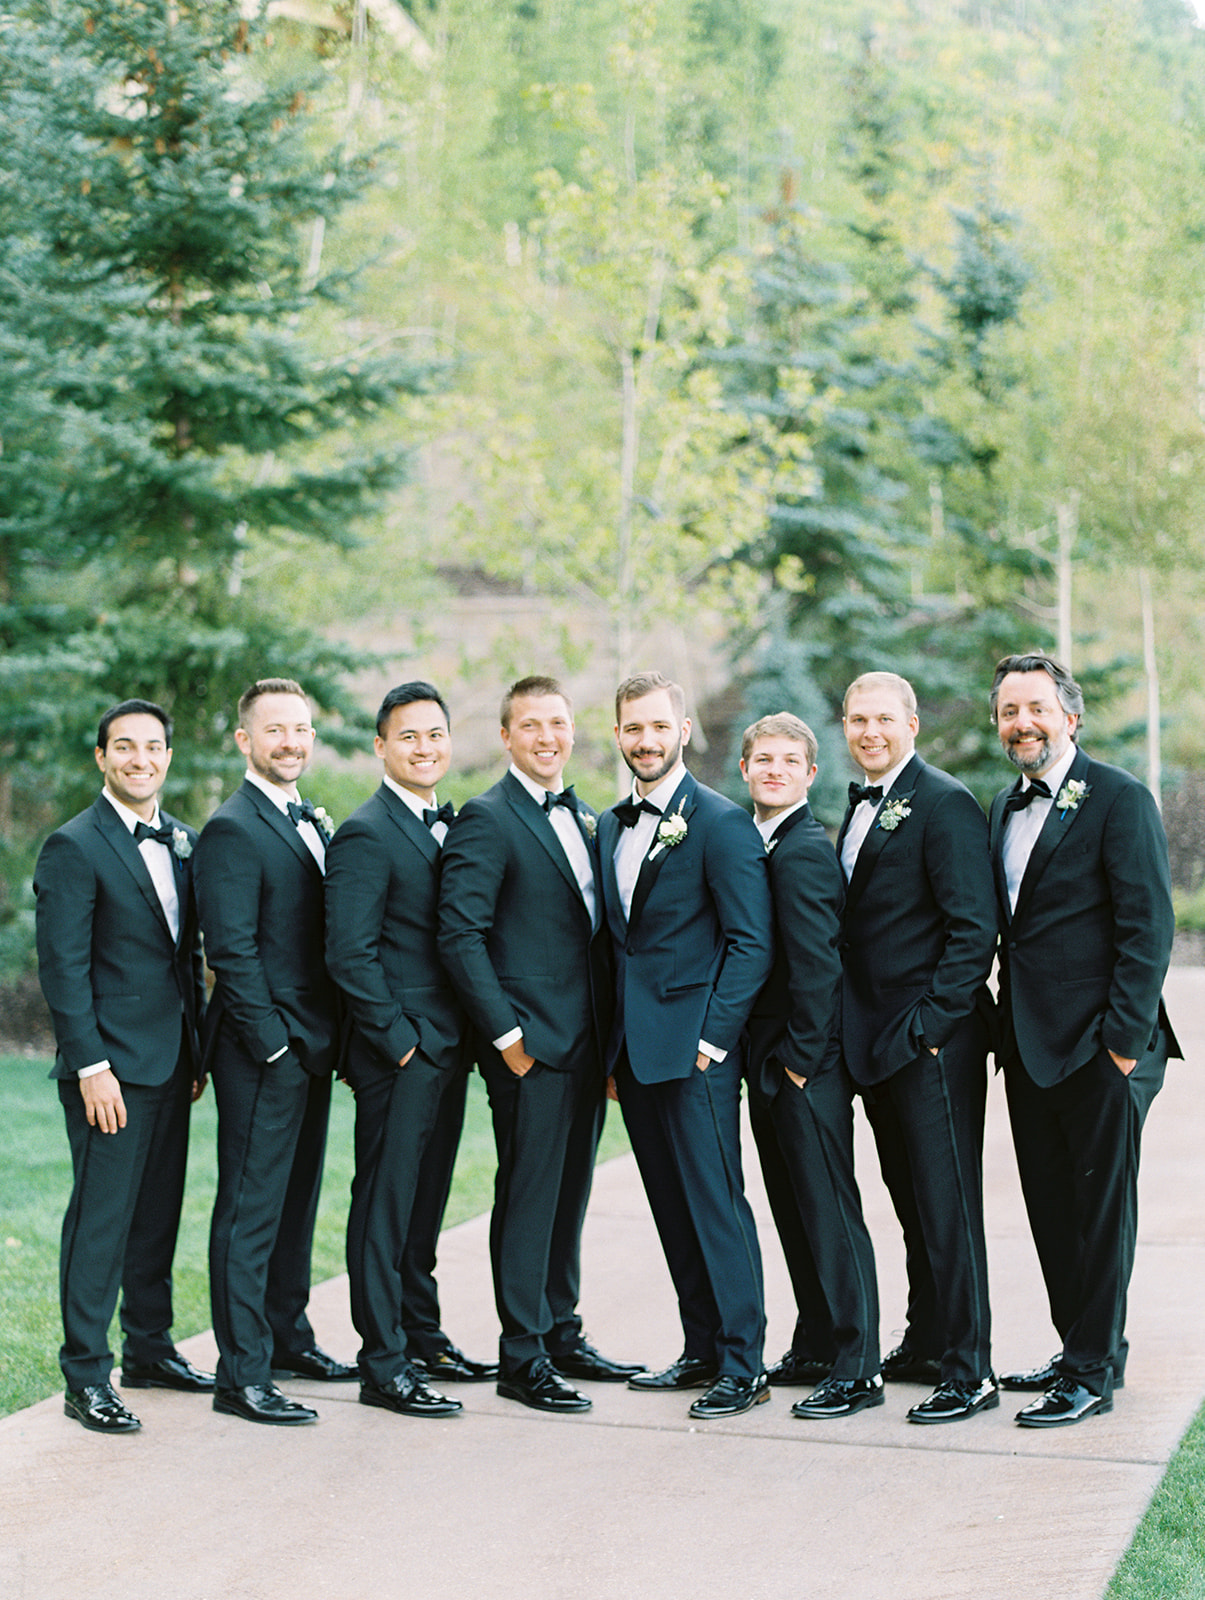 Montage Deer Valley Wedding | Classic Wedding Design | Circular Ceremony Arch | Mountain Wedding | Michelle Leo Events | Utah Event Planner | Kenzie Victory Photography